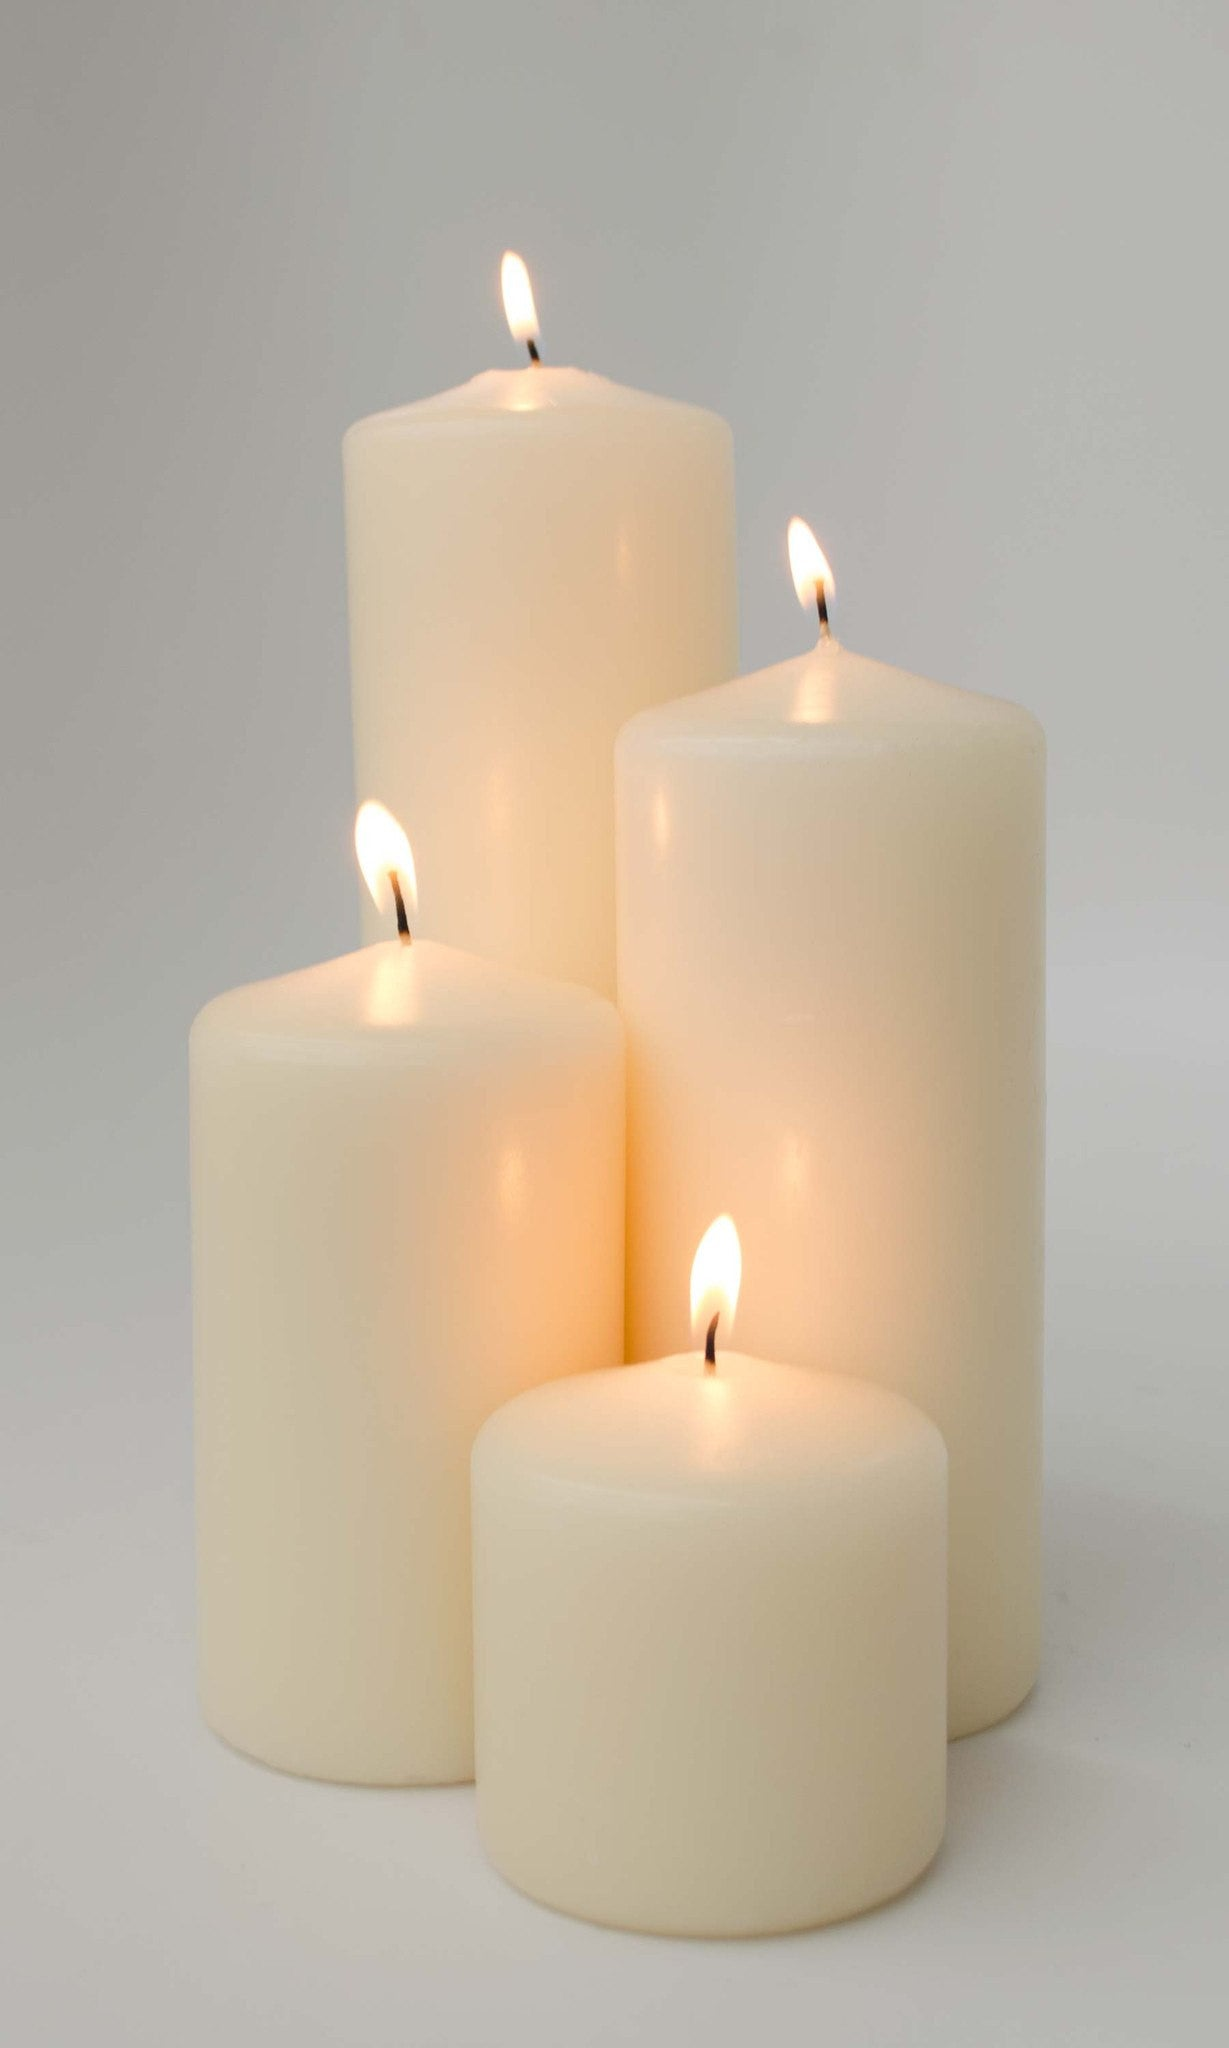 3x3 Unscented Ivory Pillar Candle - Candlemart.com - 2